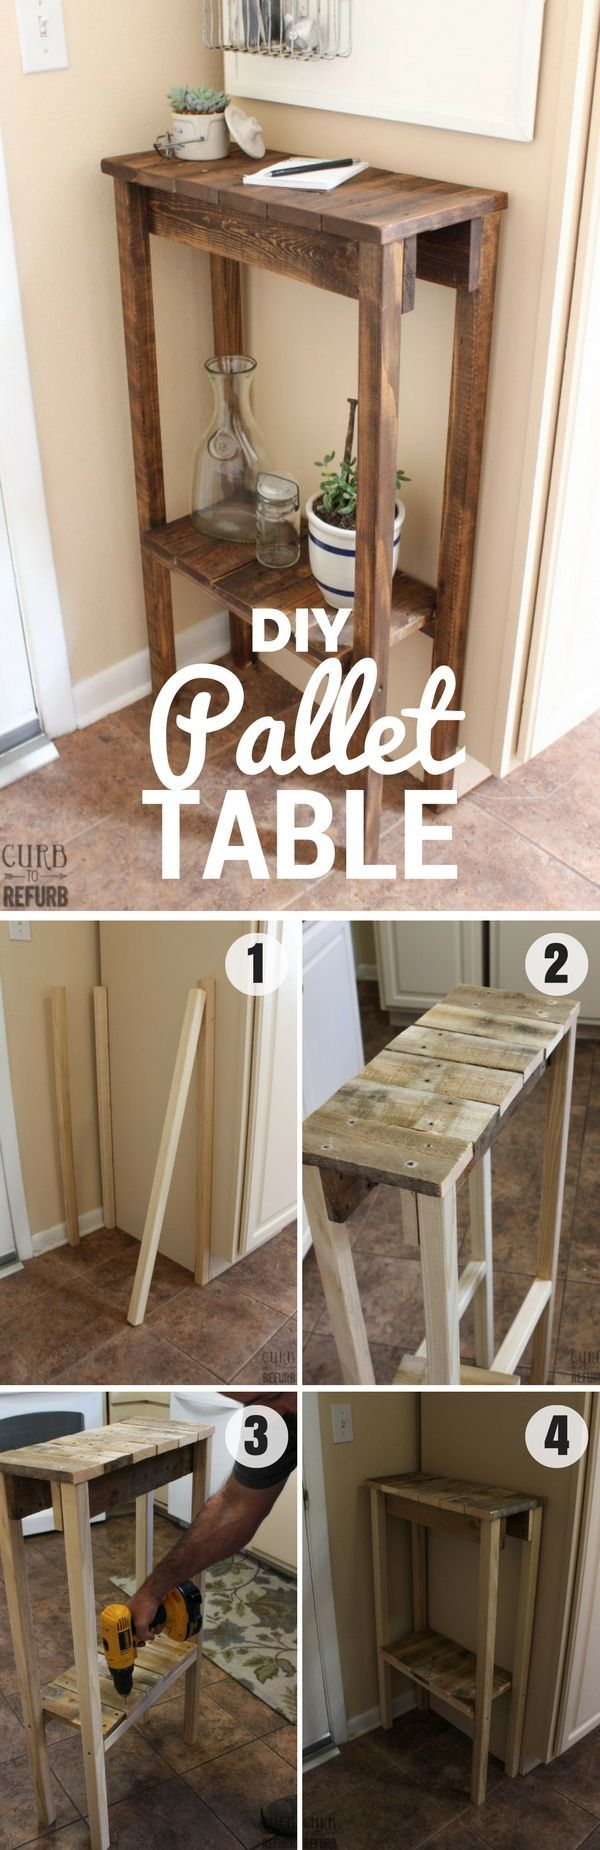 18 Amazing & Easy DIY Wood Craft Project Ideas for Home Decor